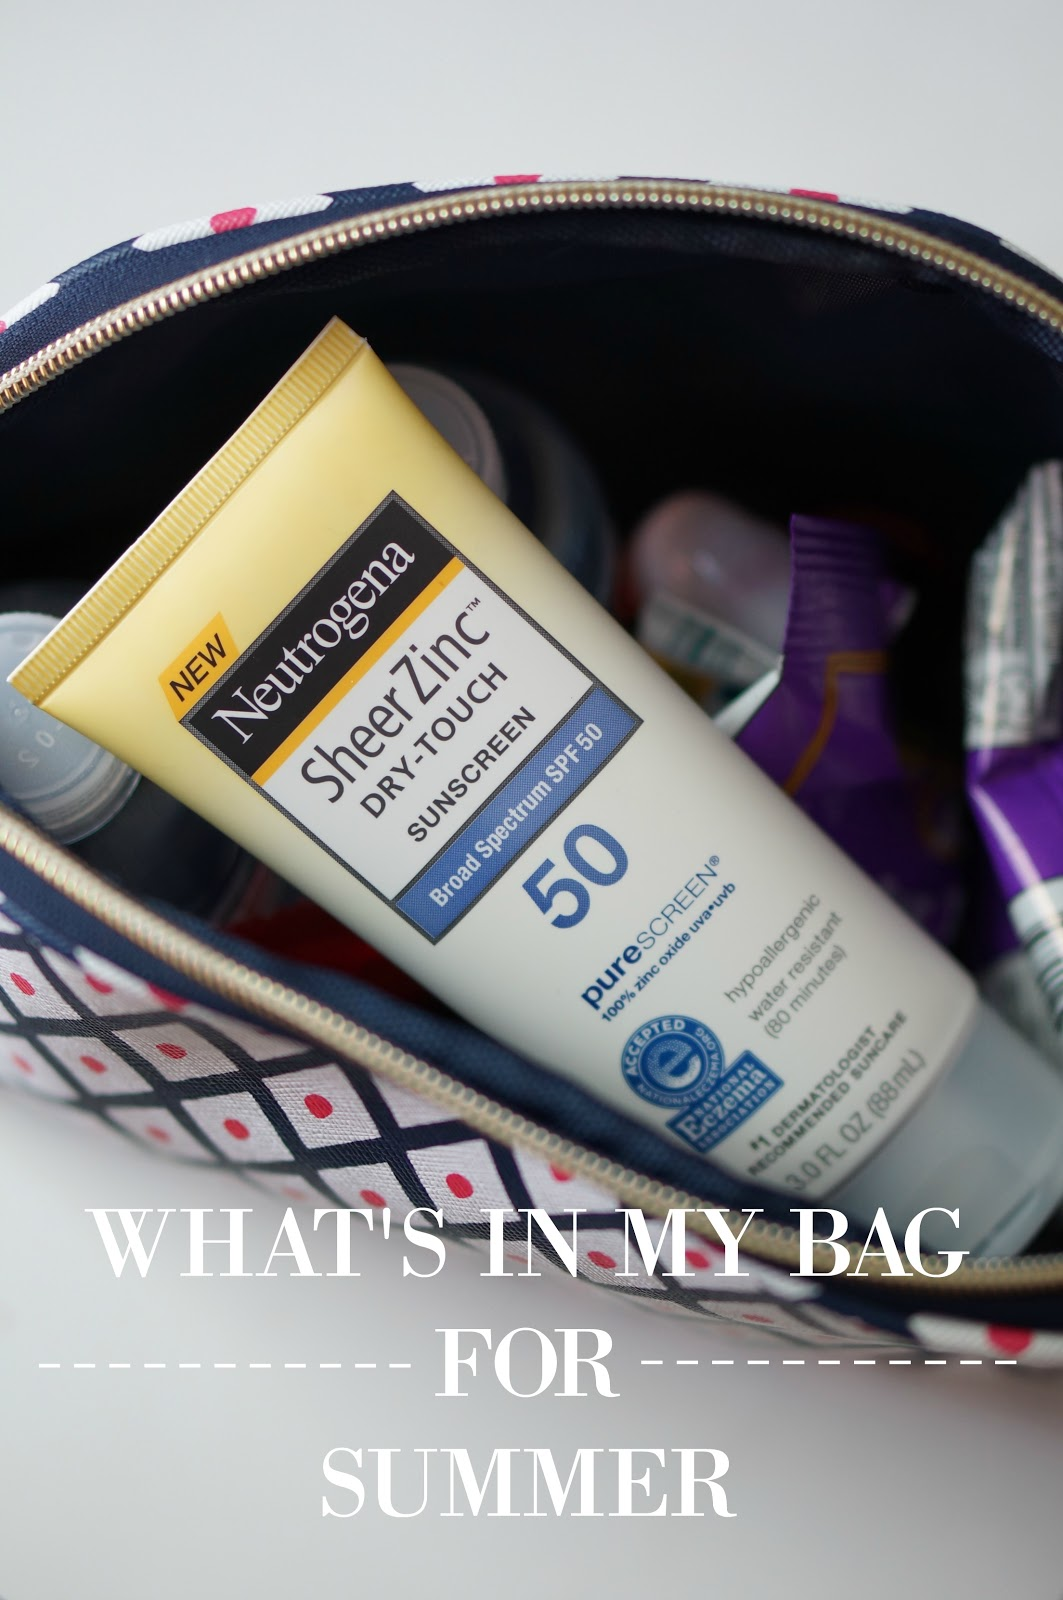 Rebecca Lately What's In My Bag Summer Neutrogena Sheer Zinc Lotion #CollectiveBias #ChooseSkinHealth #SummerSkinReady